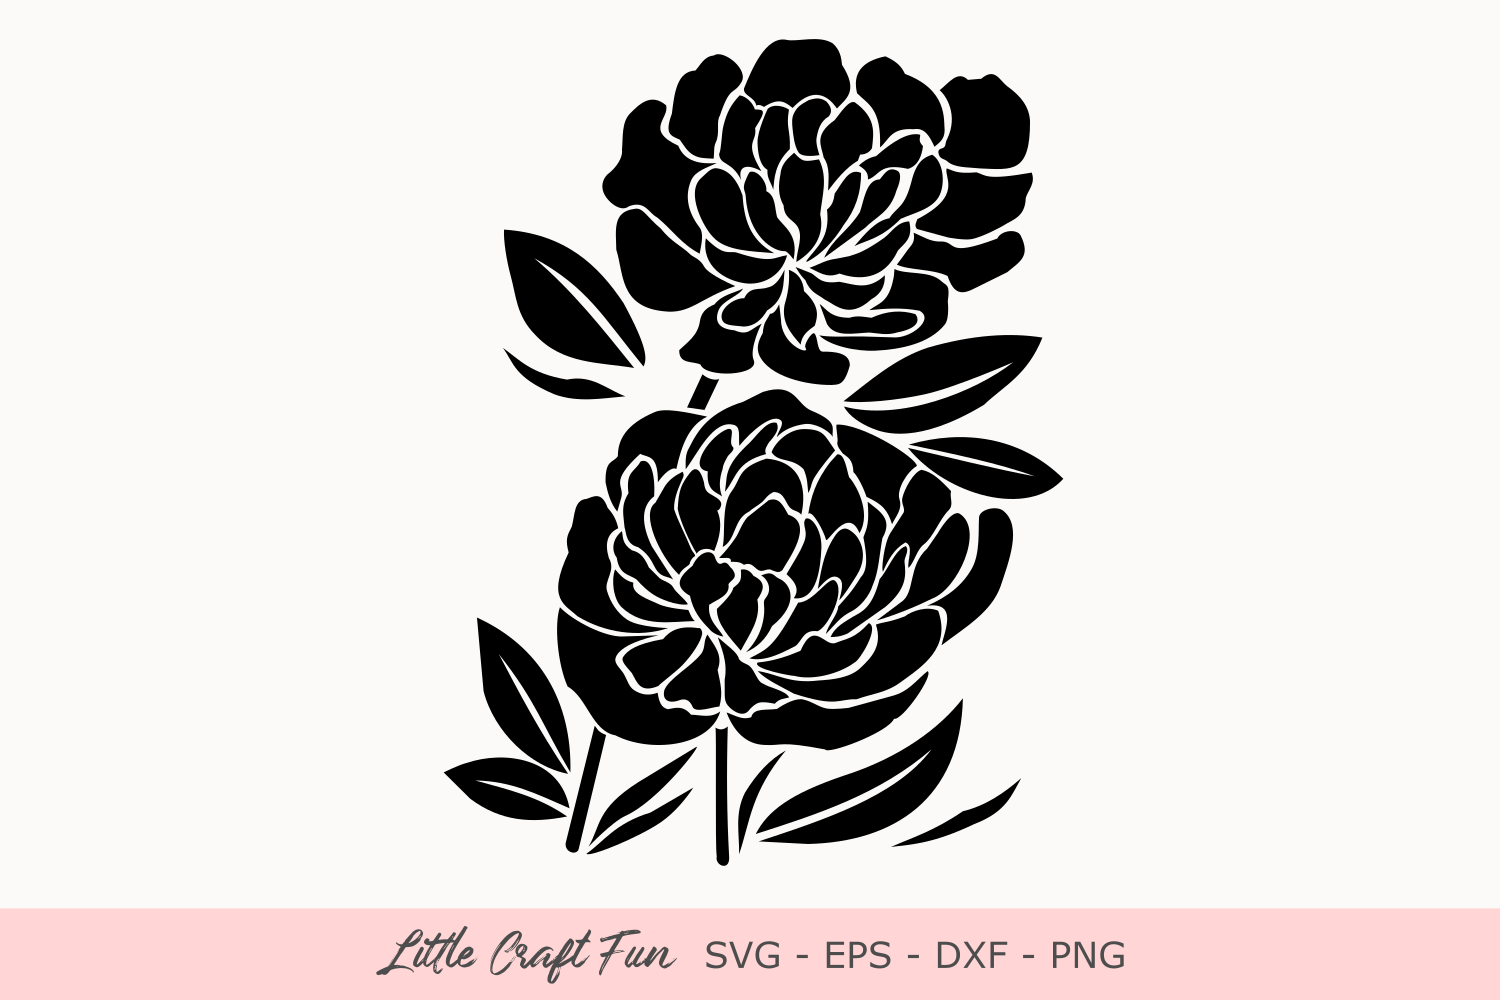 Download Free Peonies Flowers Silhouette Svg Graphic By Little Craft Fun SVG Cut Files